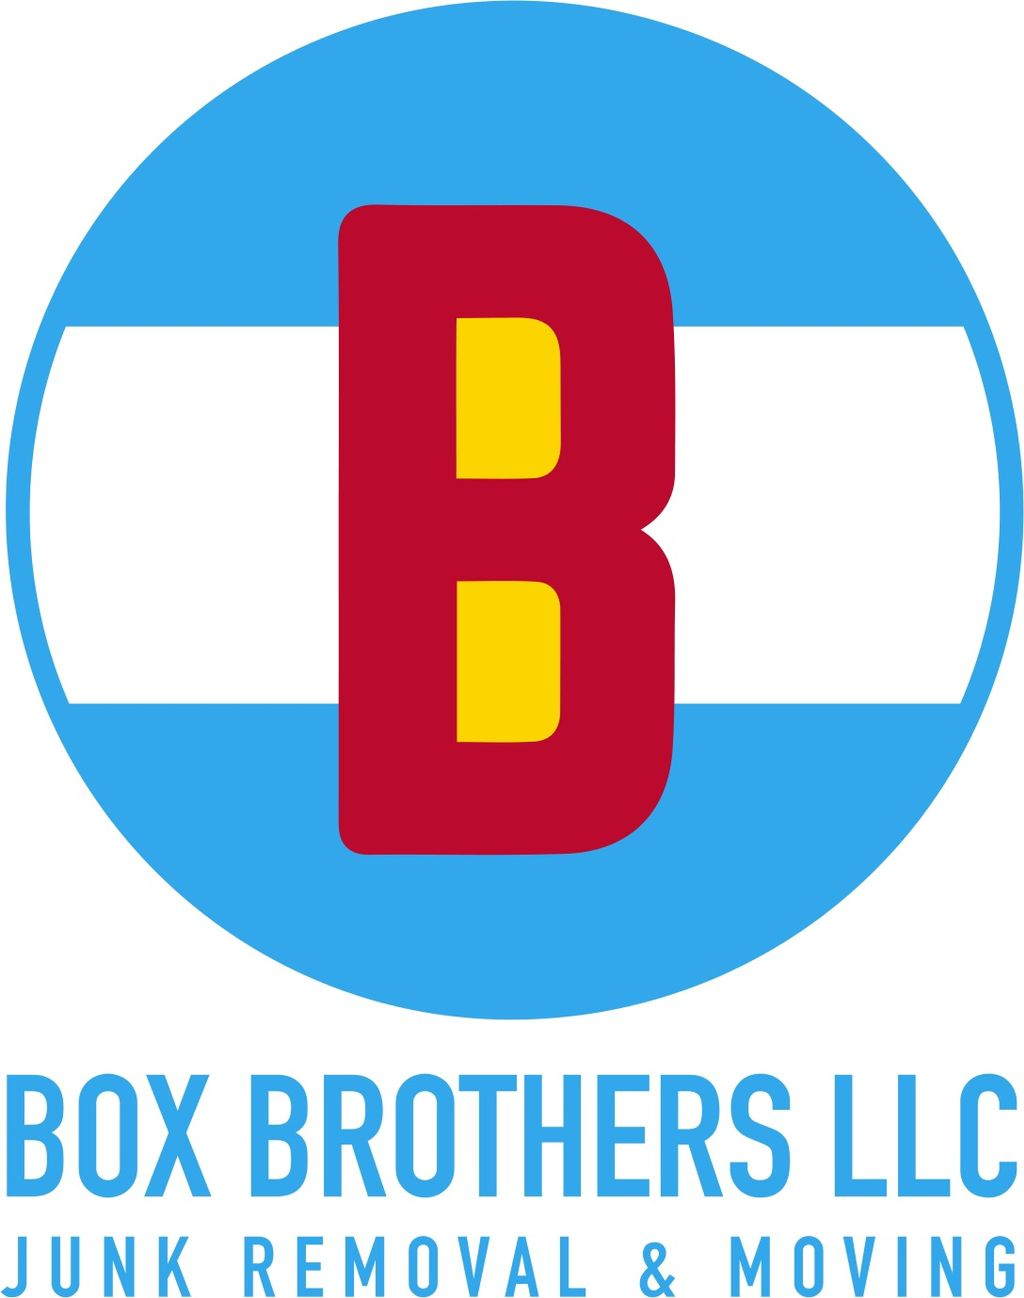 Box Brothers Junk Removal and Moving